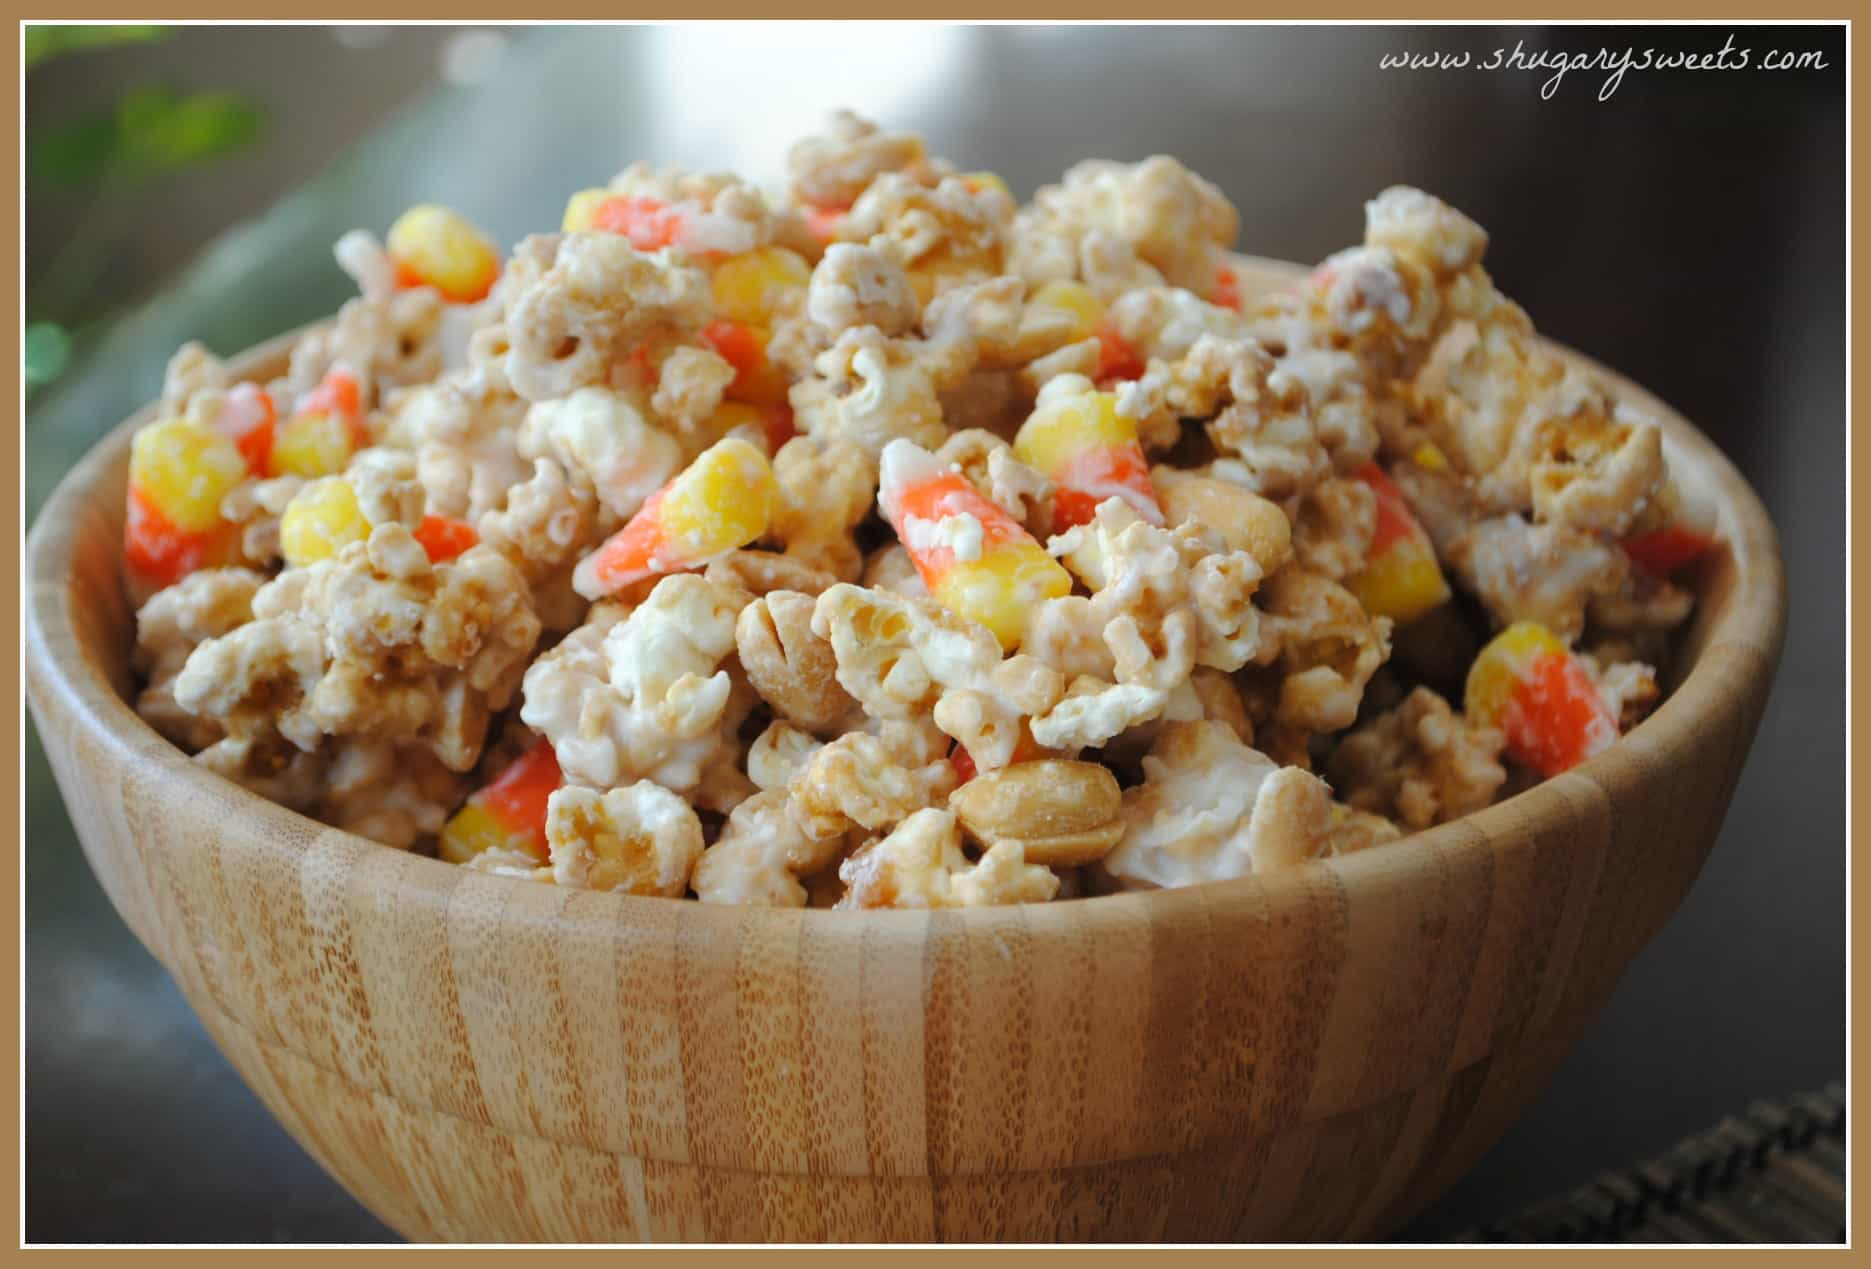 Wooden bowl filled with homemade caramel corn with peanuts and candy corn.